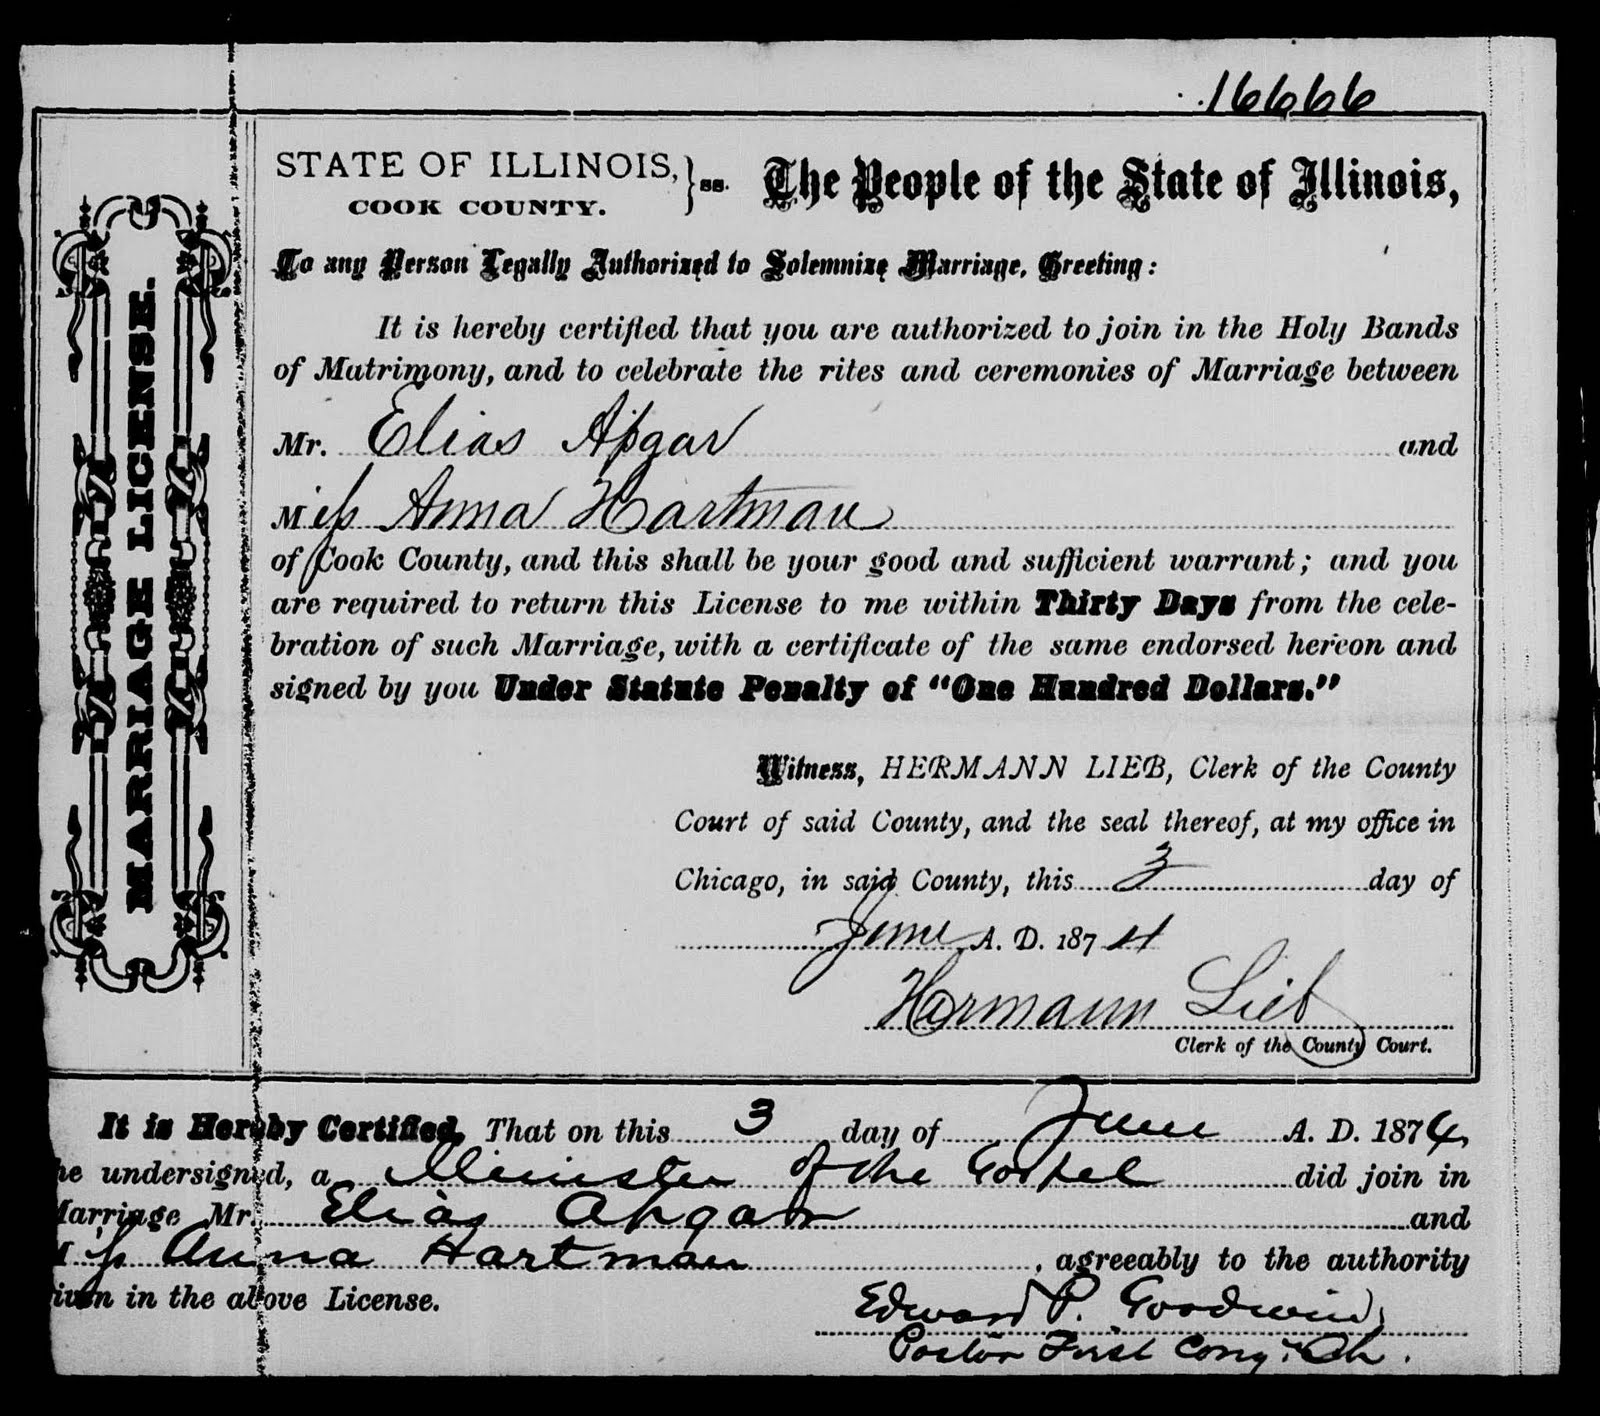 apgar cook county 1874 illinois hartman chicago familysearch elias anna william rootdig frame marriage 1871 database married comes june were